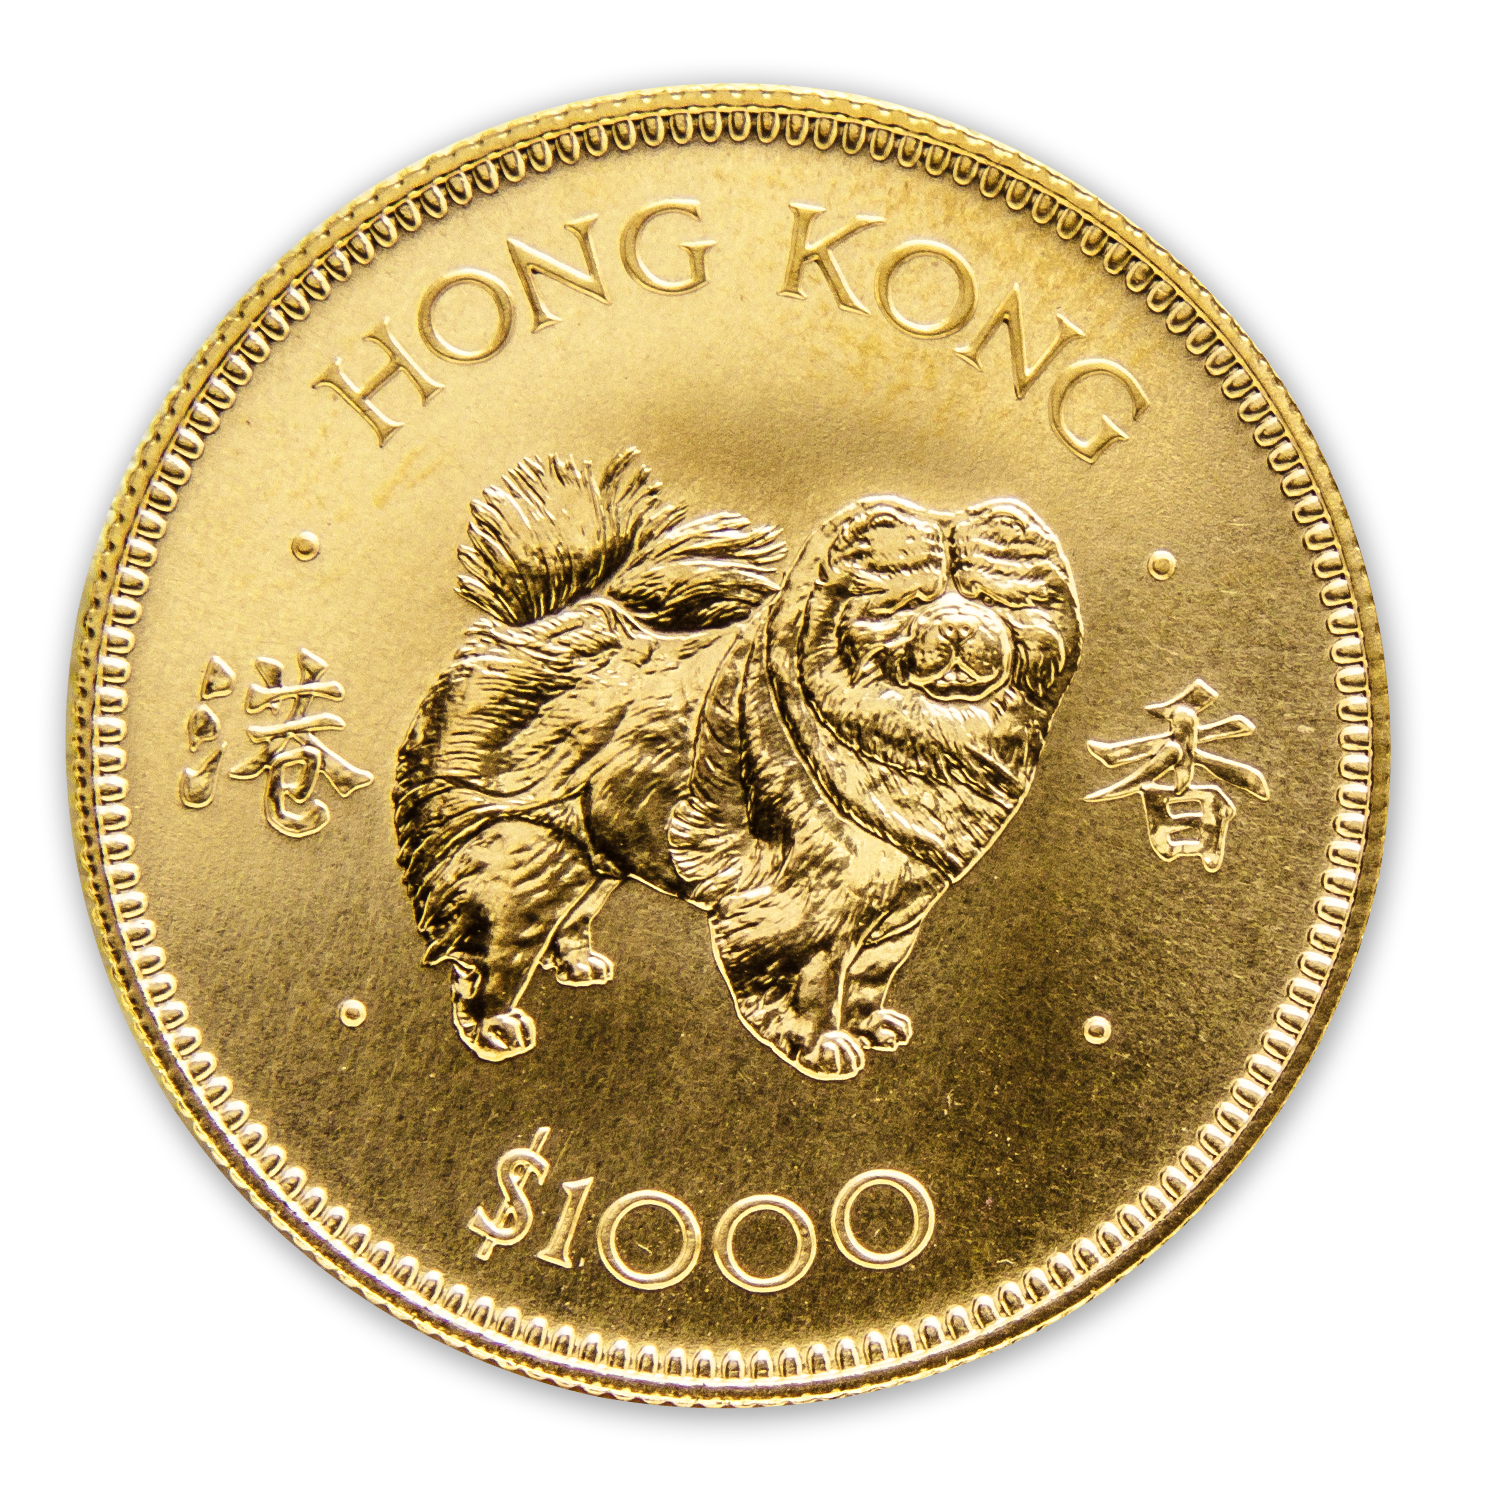 Hong Kong 1982 $1000 Gold Unc Year of the Dog